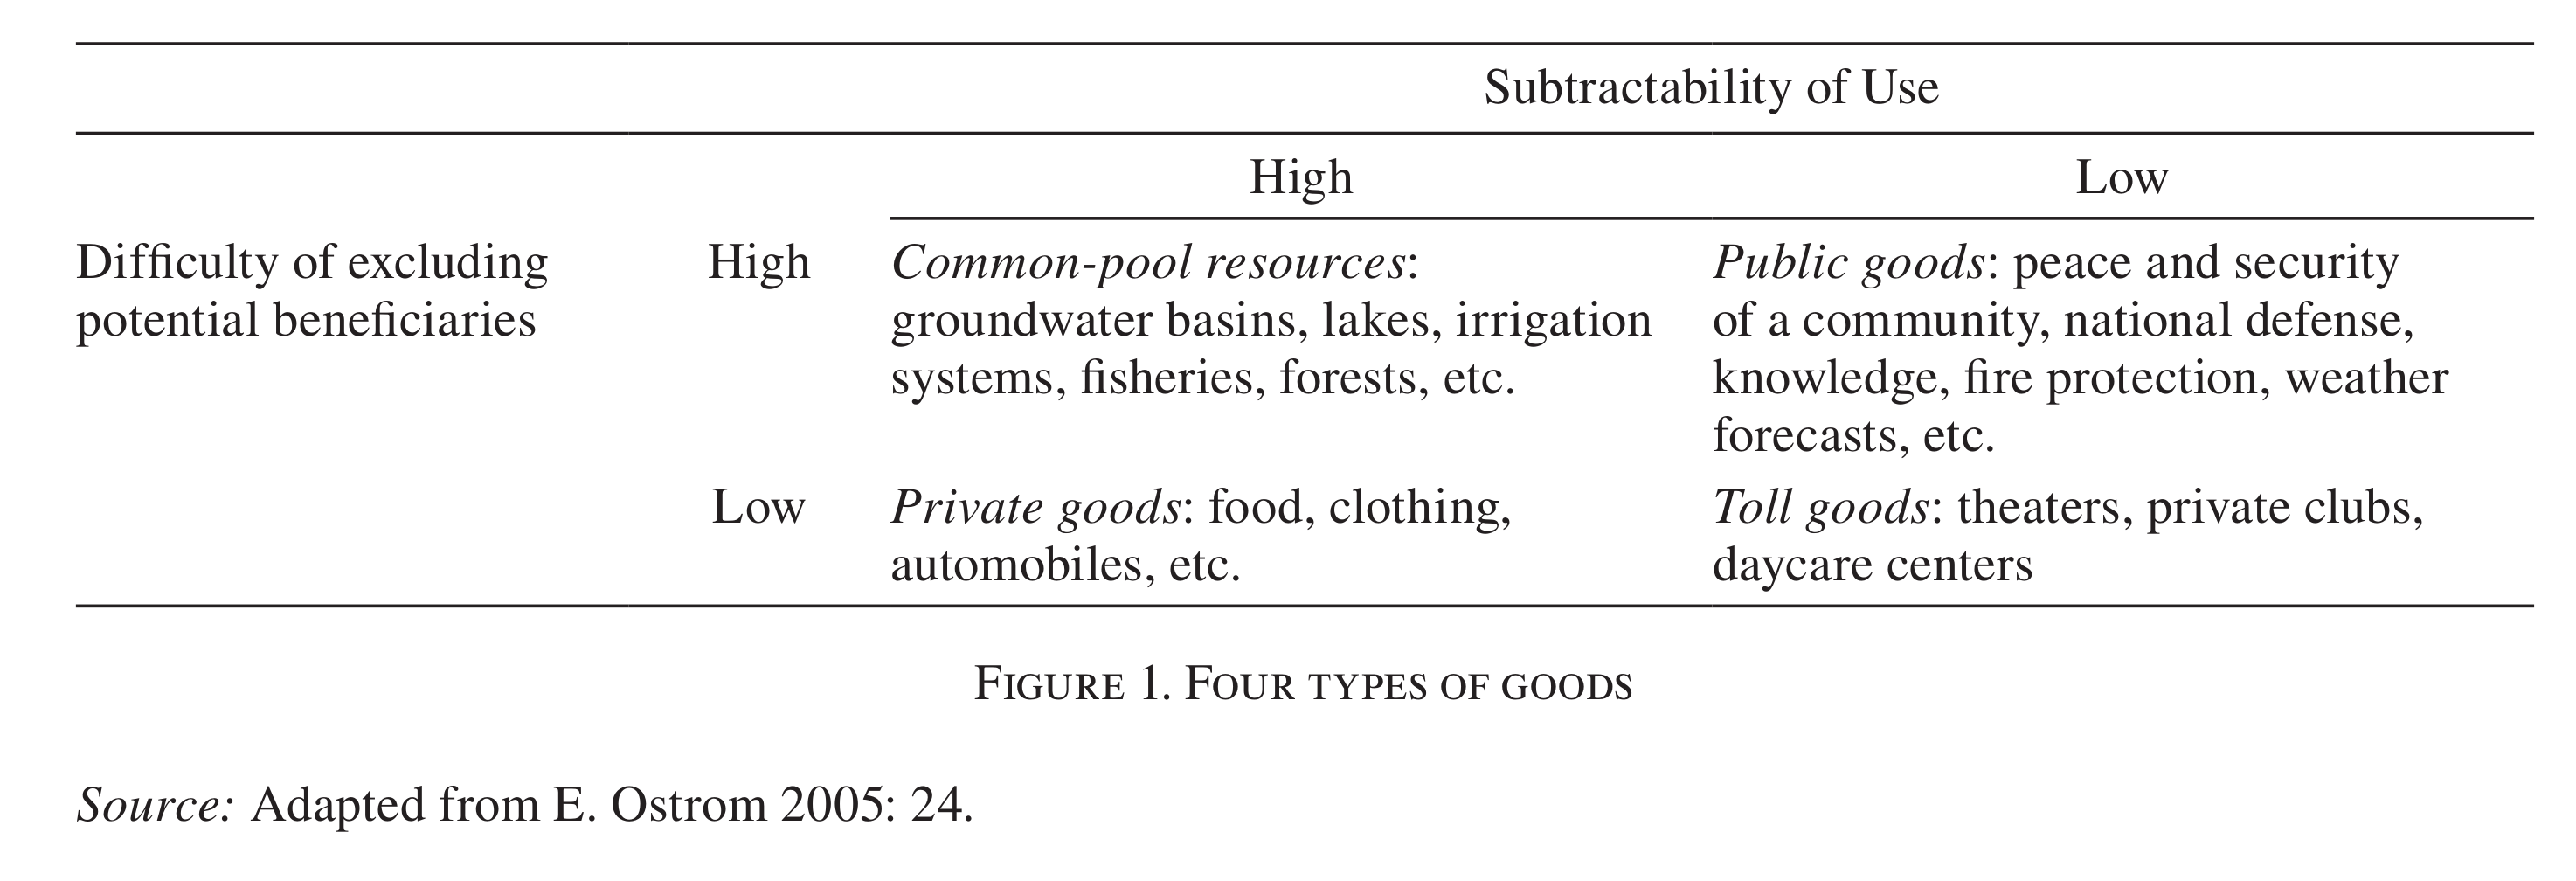 OSTROM Elinor, Beyond Markets and States: Polycentric Governance of Complex Economic Systems, American Economic Review 100 (June 2010): p.5 http://www.aeaweb.org/articles.php?doi=10.1257/aer.100.3.1